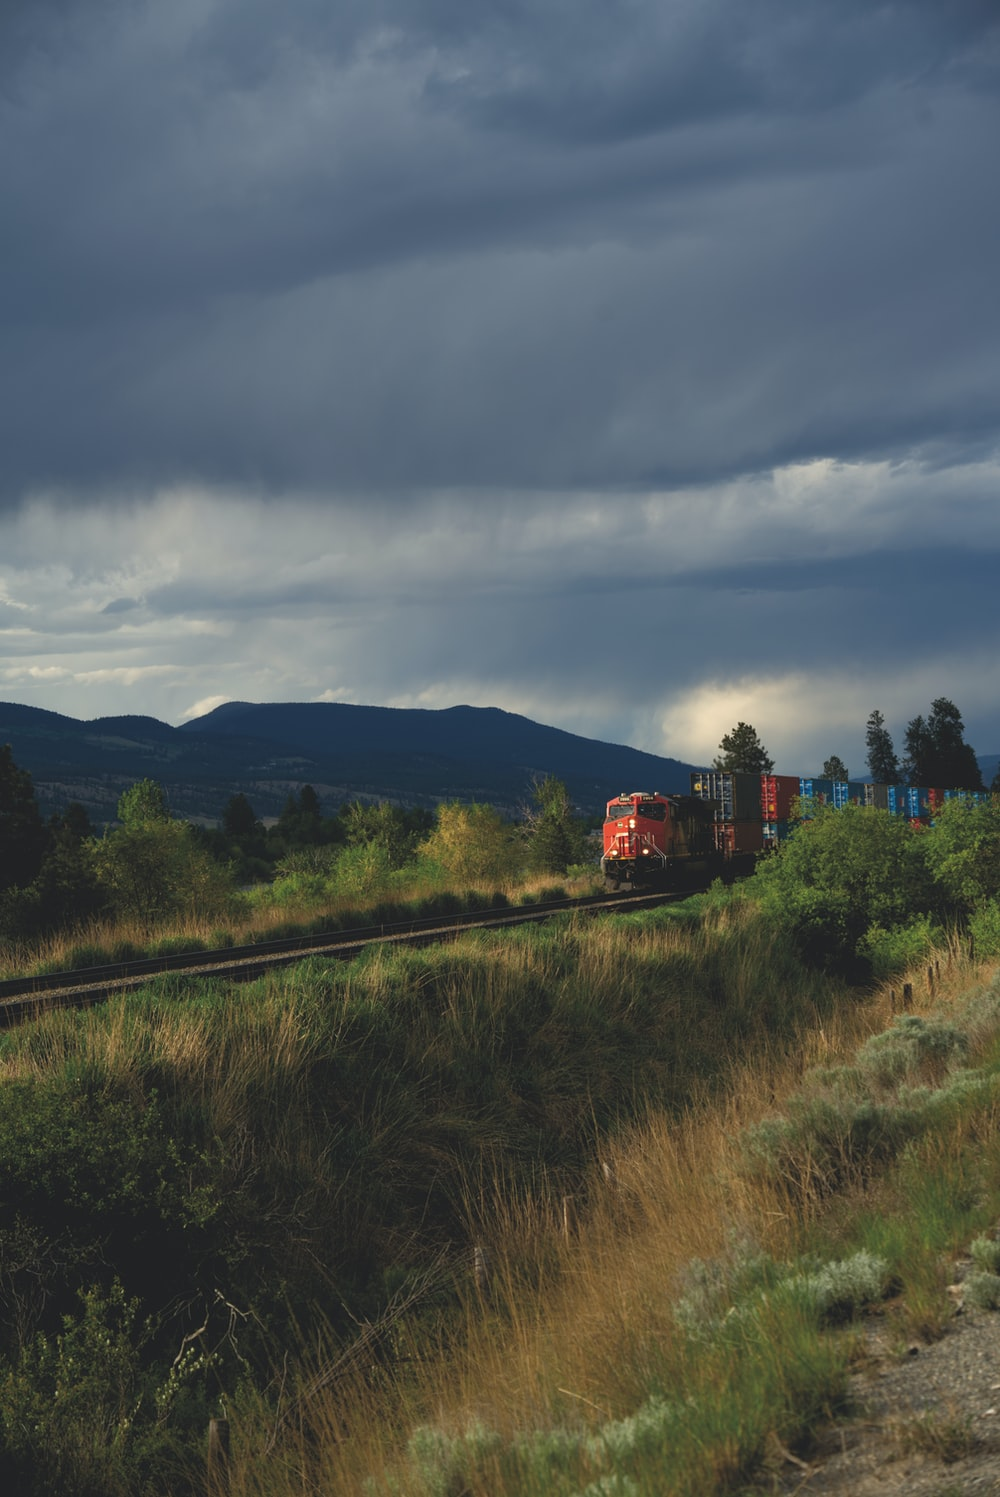 red train on rail road near green grass field under cloudy sky during daytime